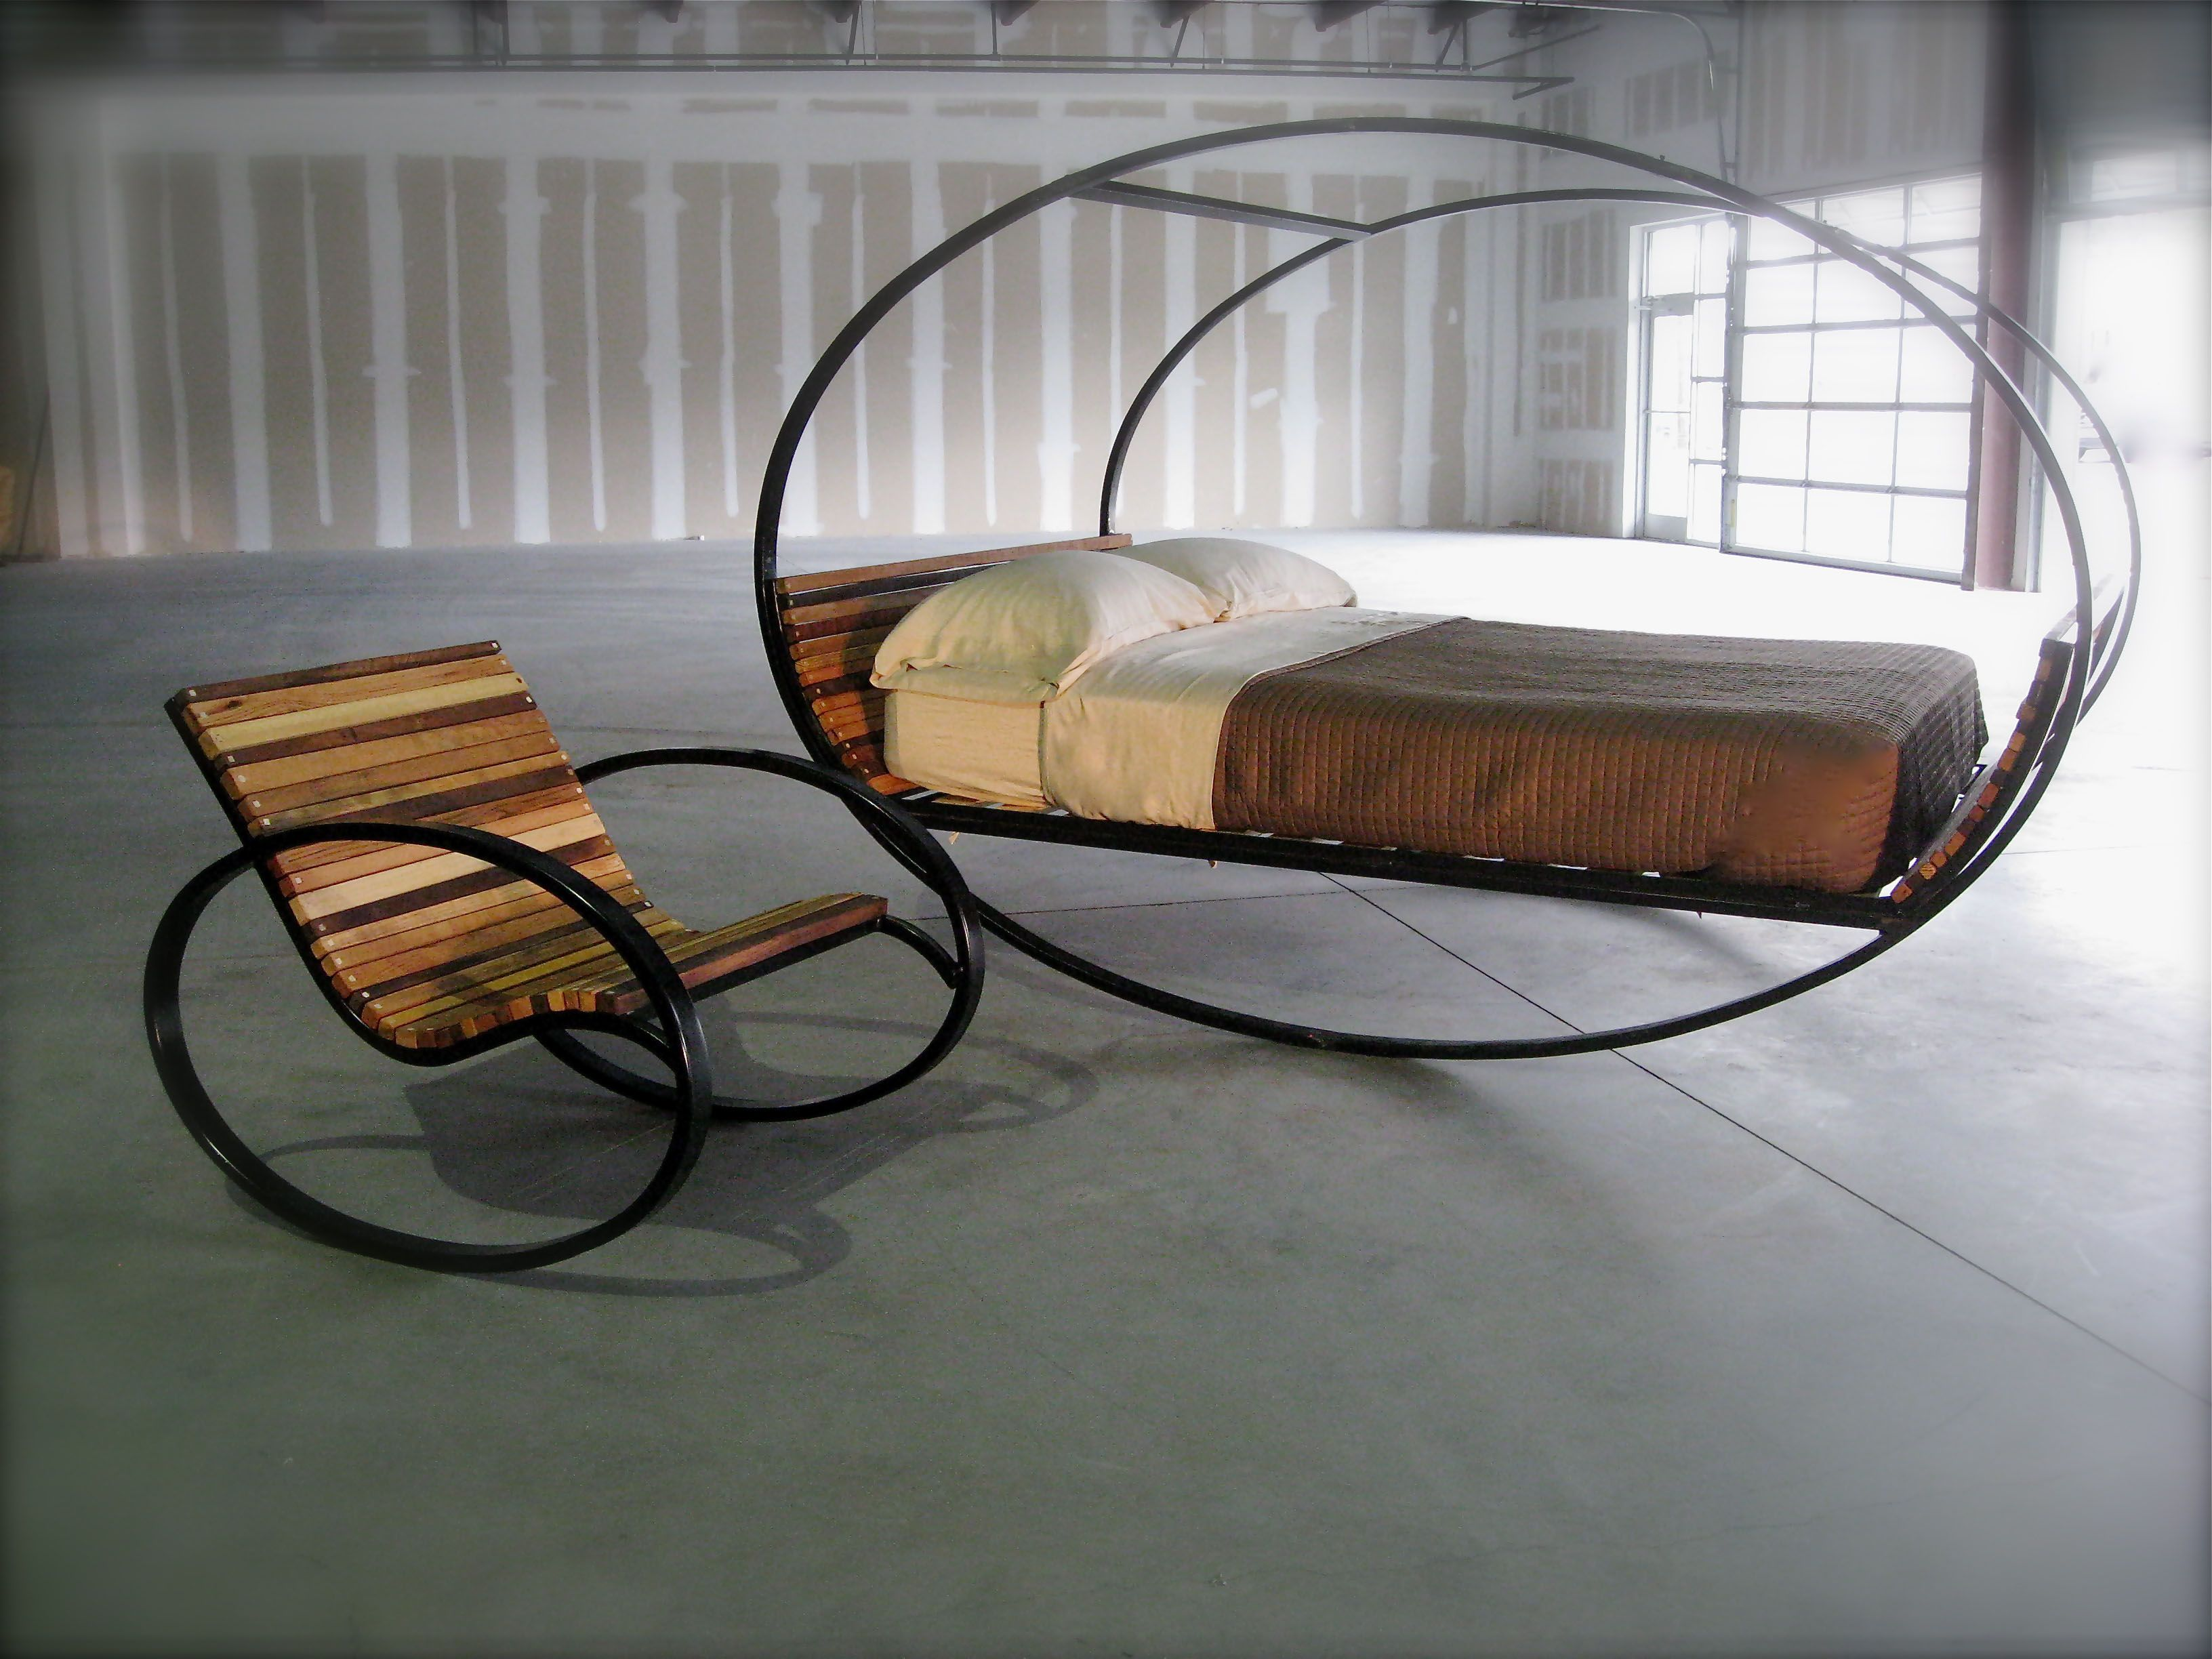 Whatu0027s Better Than A Rocking Chair.a Rocking Bed. Mood Rocking Bed For  Welcoming Summer Indoors And Out. Design